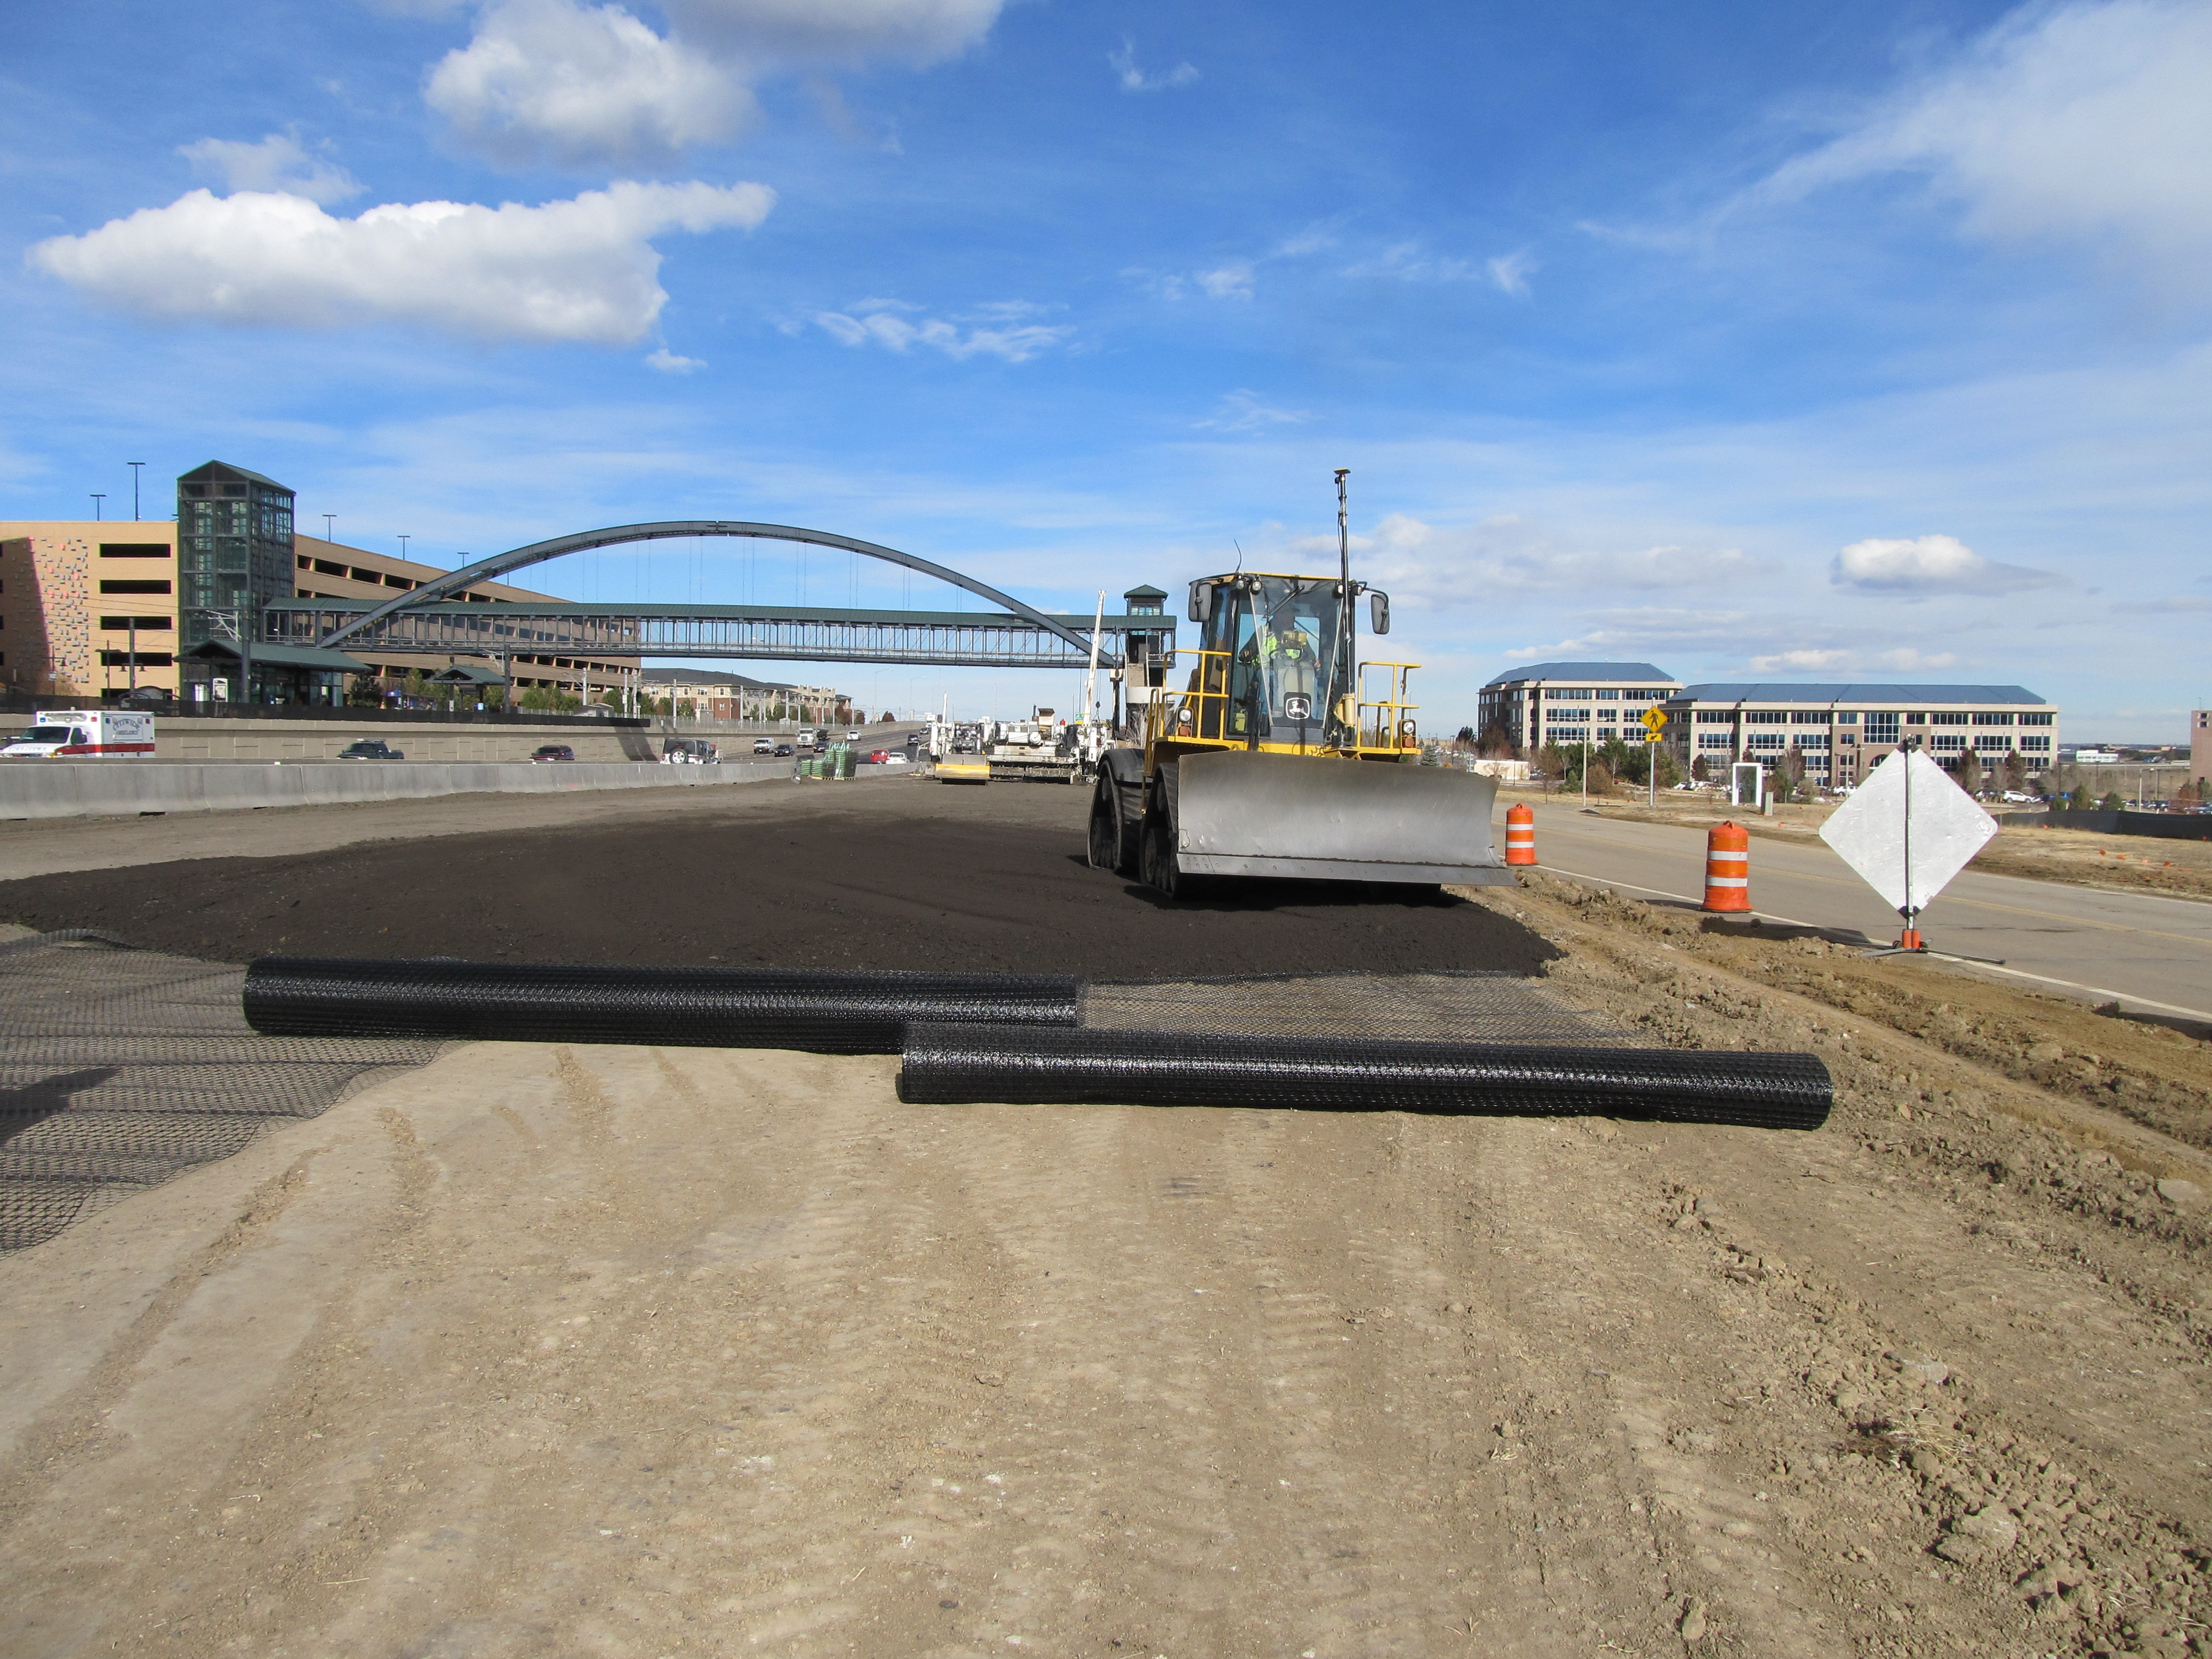 Overcoming Expansive Soils with Tensar's TriAx Geogrid